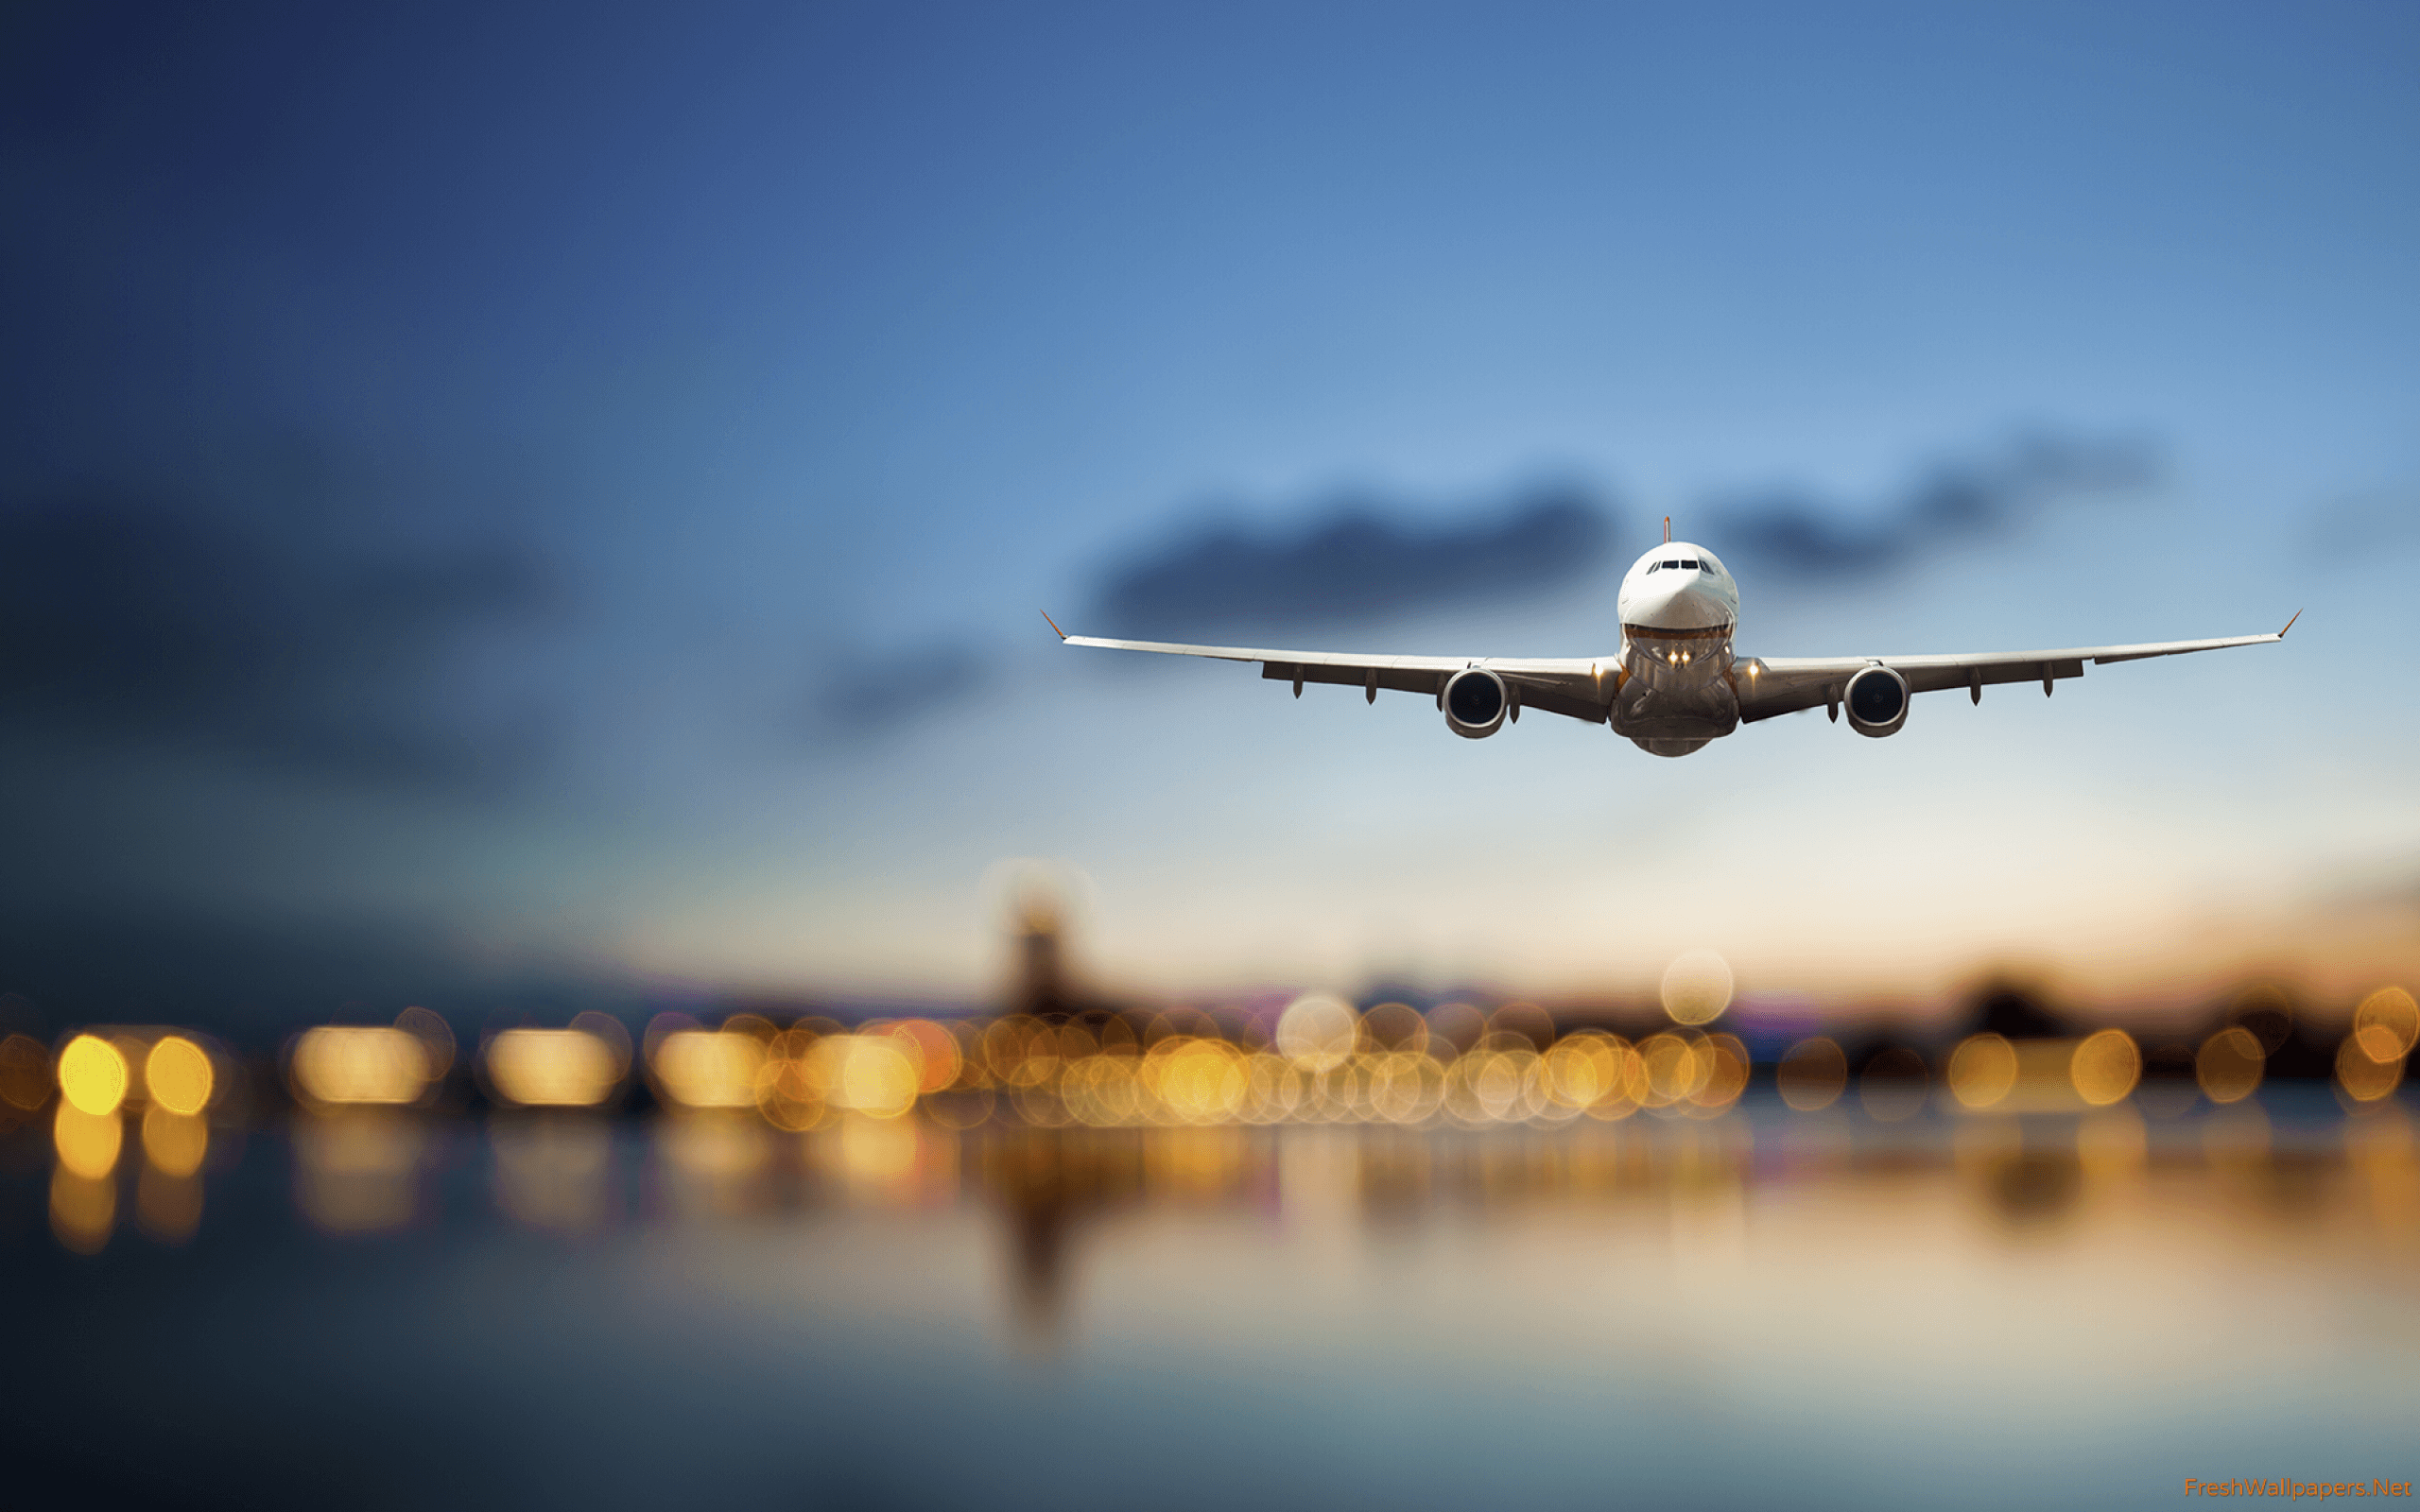 Hd Aviation Wallpapers Top Free Hd Aviation Backgrounds